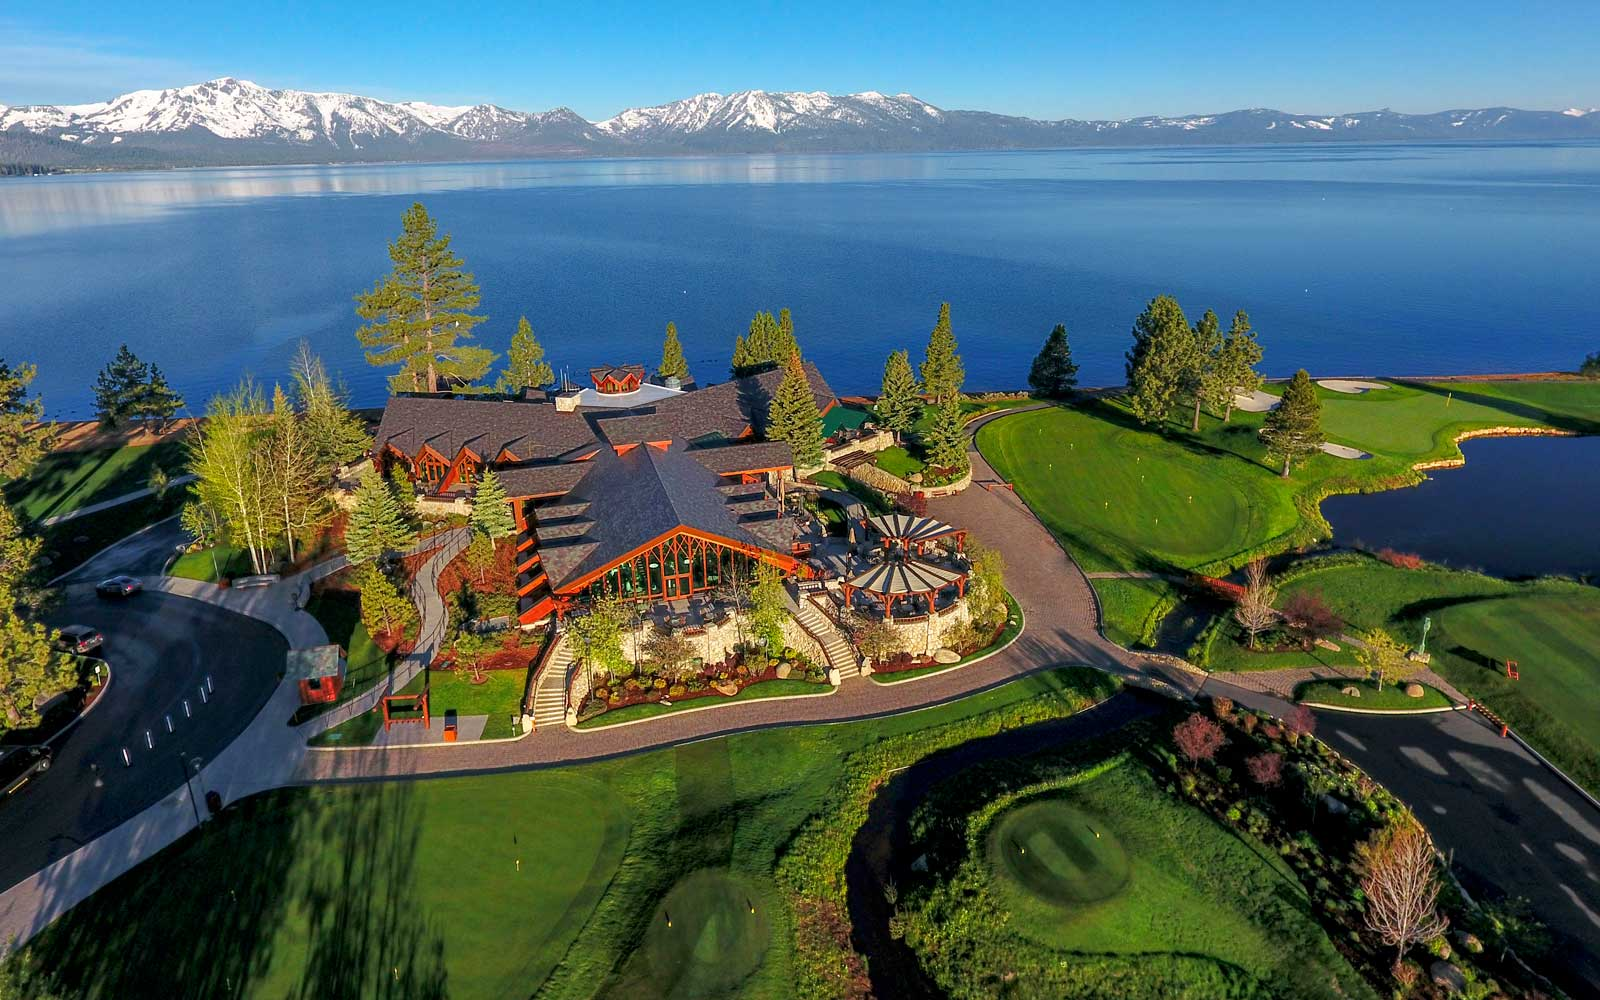 Aerial view of the Lodge at Edgewood Tahoe